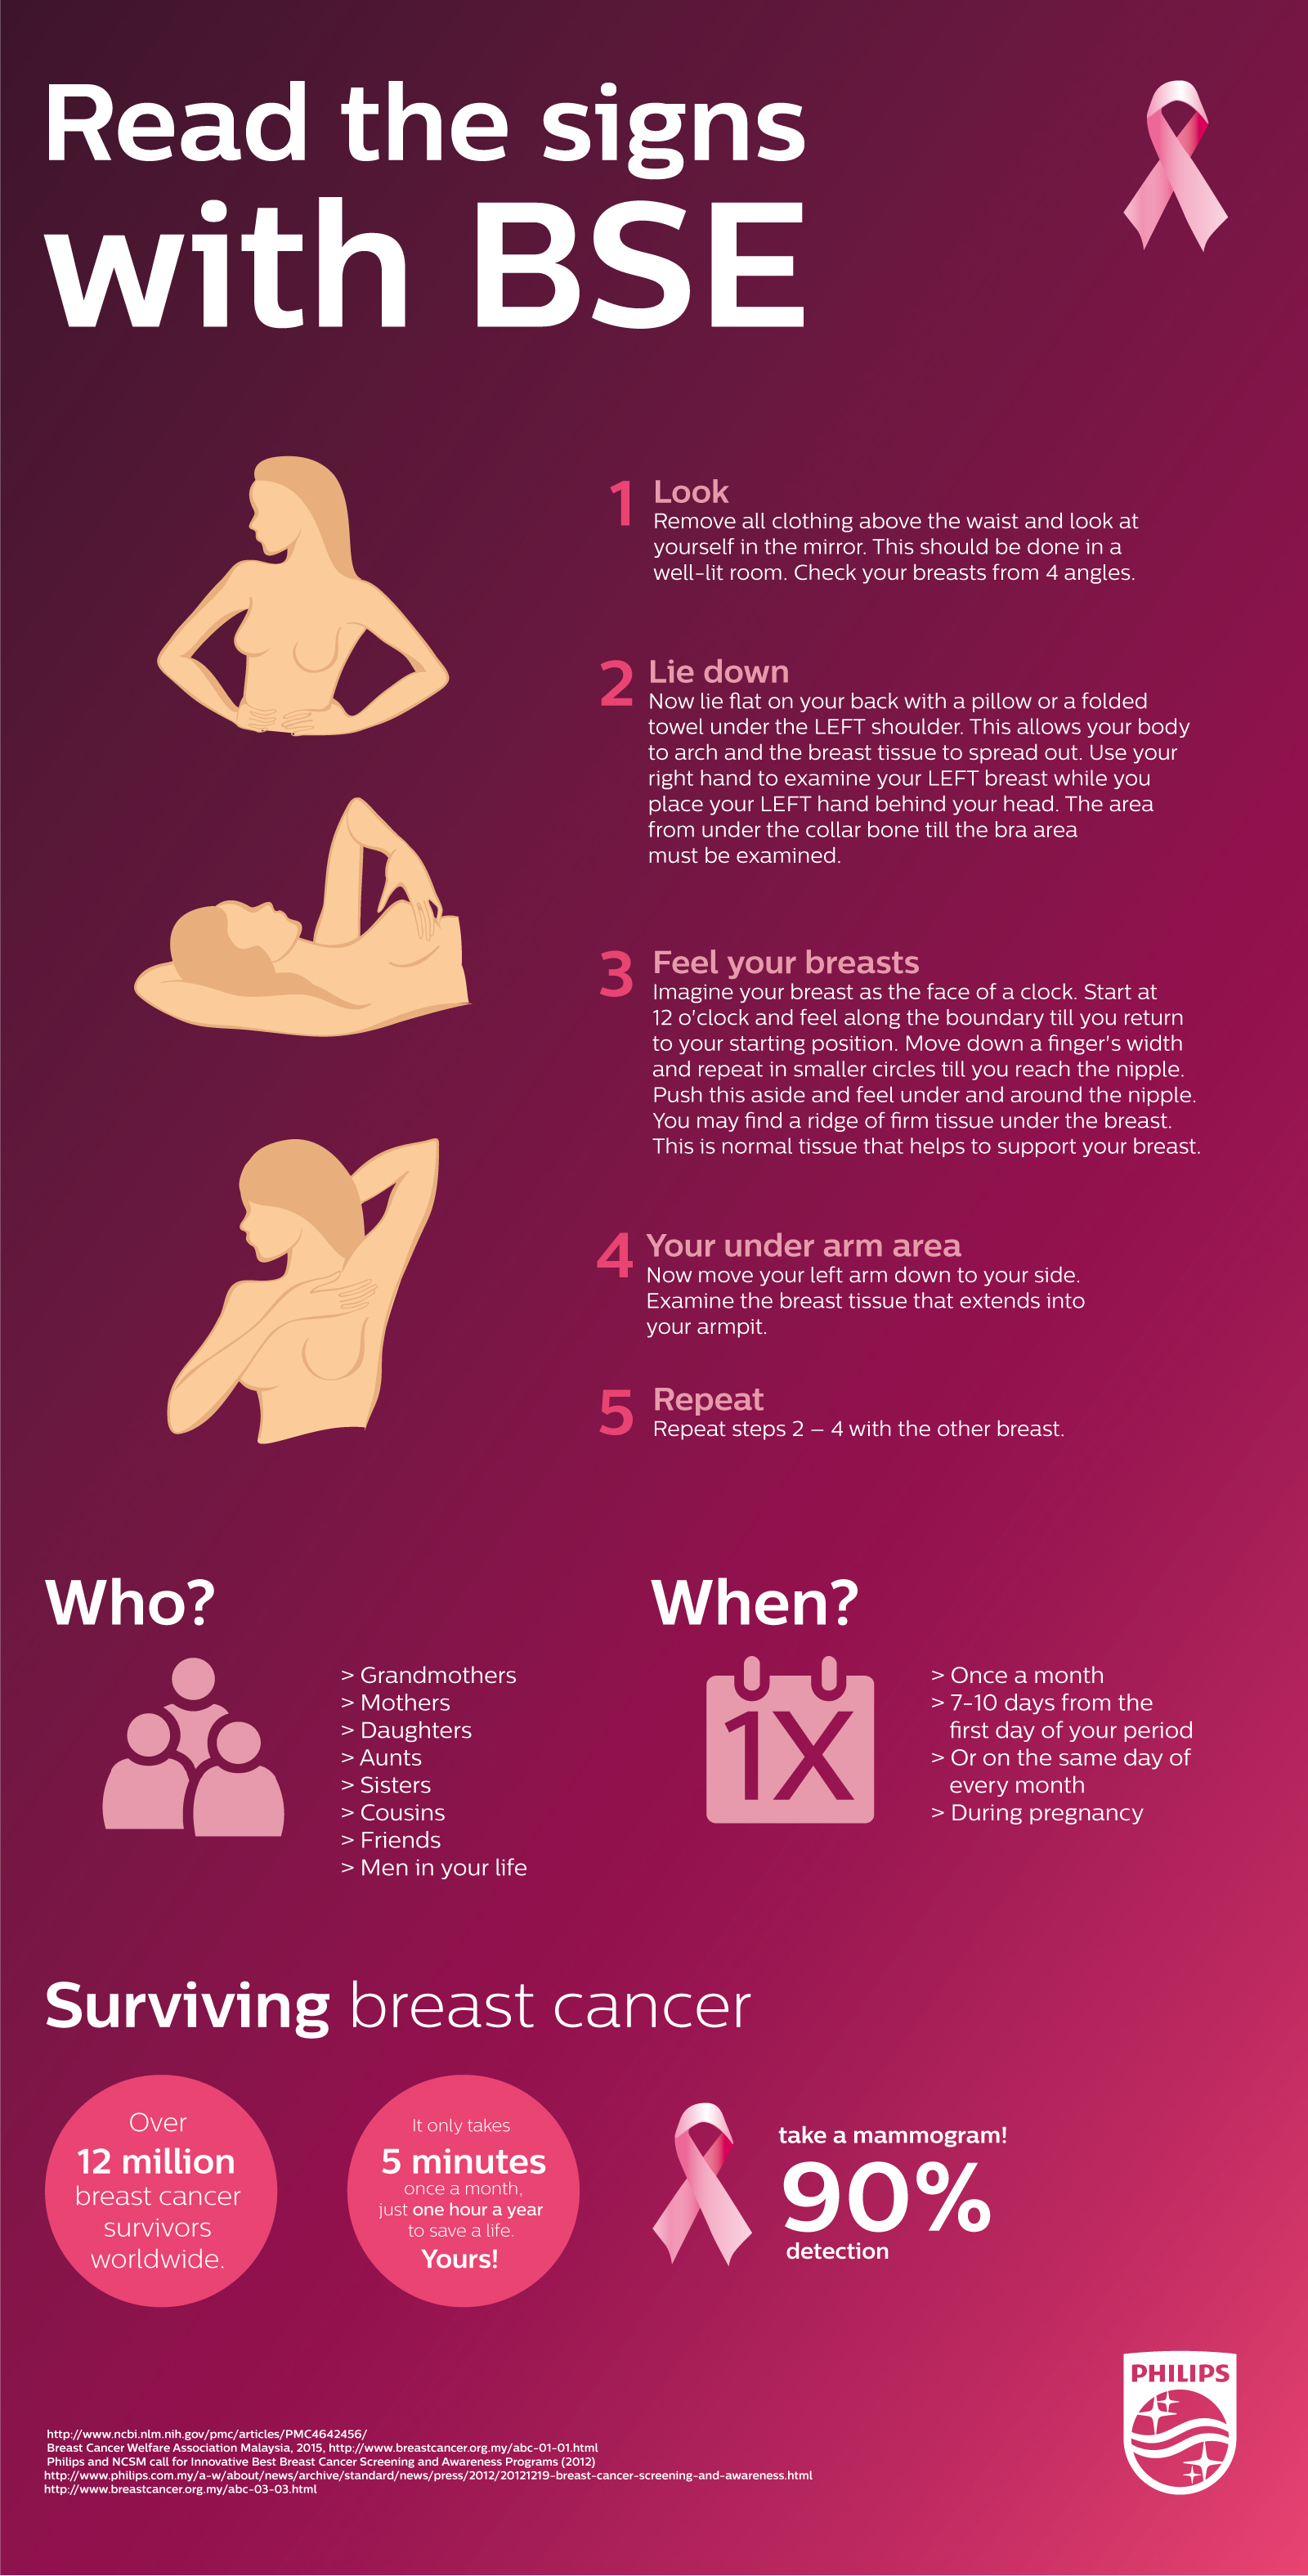 the importance of self examination A breast self-exam is a screening technique you can do at home to check for breast lumps this exam can screen for tumors, cysts, or other abnormalities  this is important because it can help.